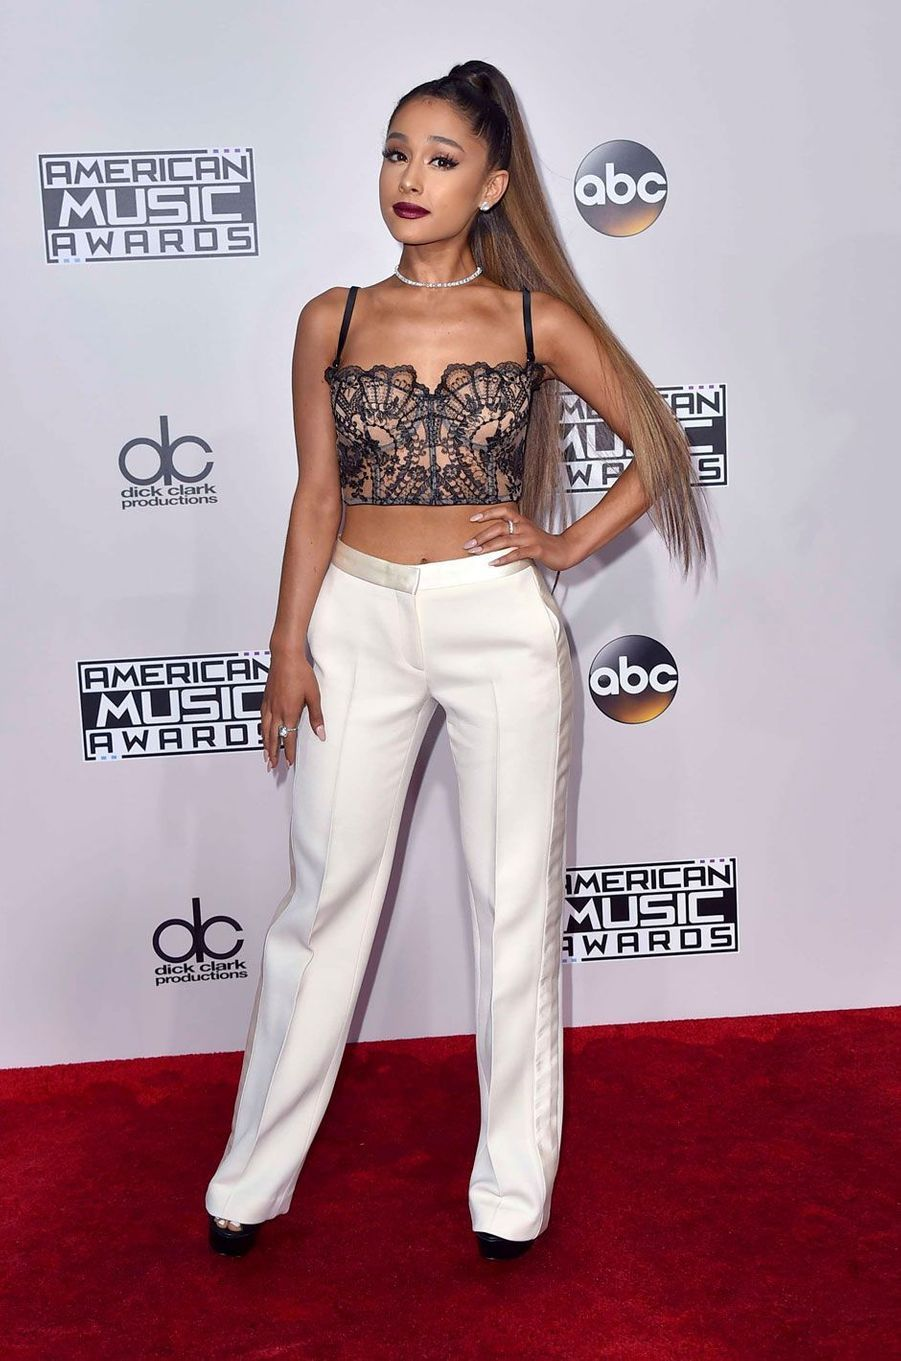 Ariana Grandeaux American Music Awards